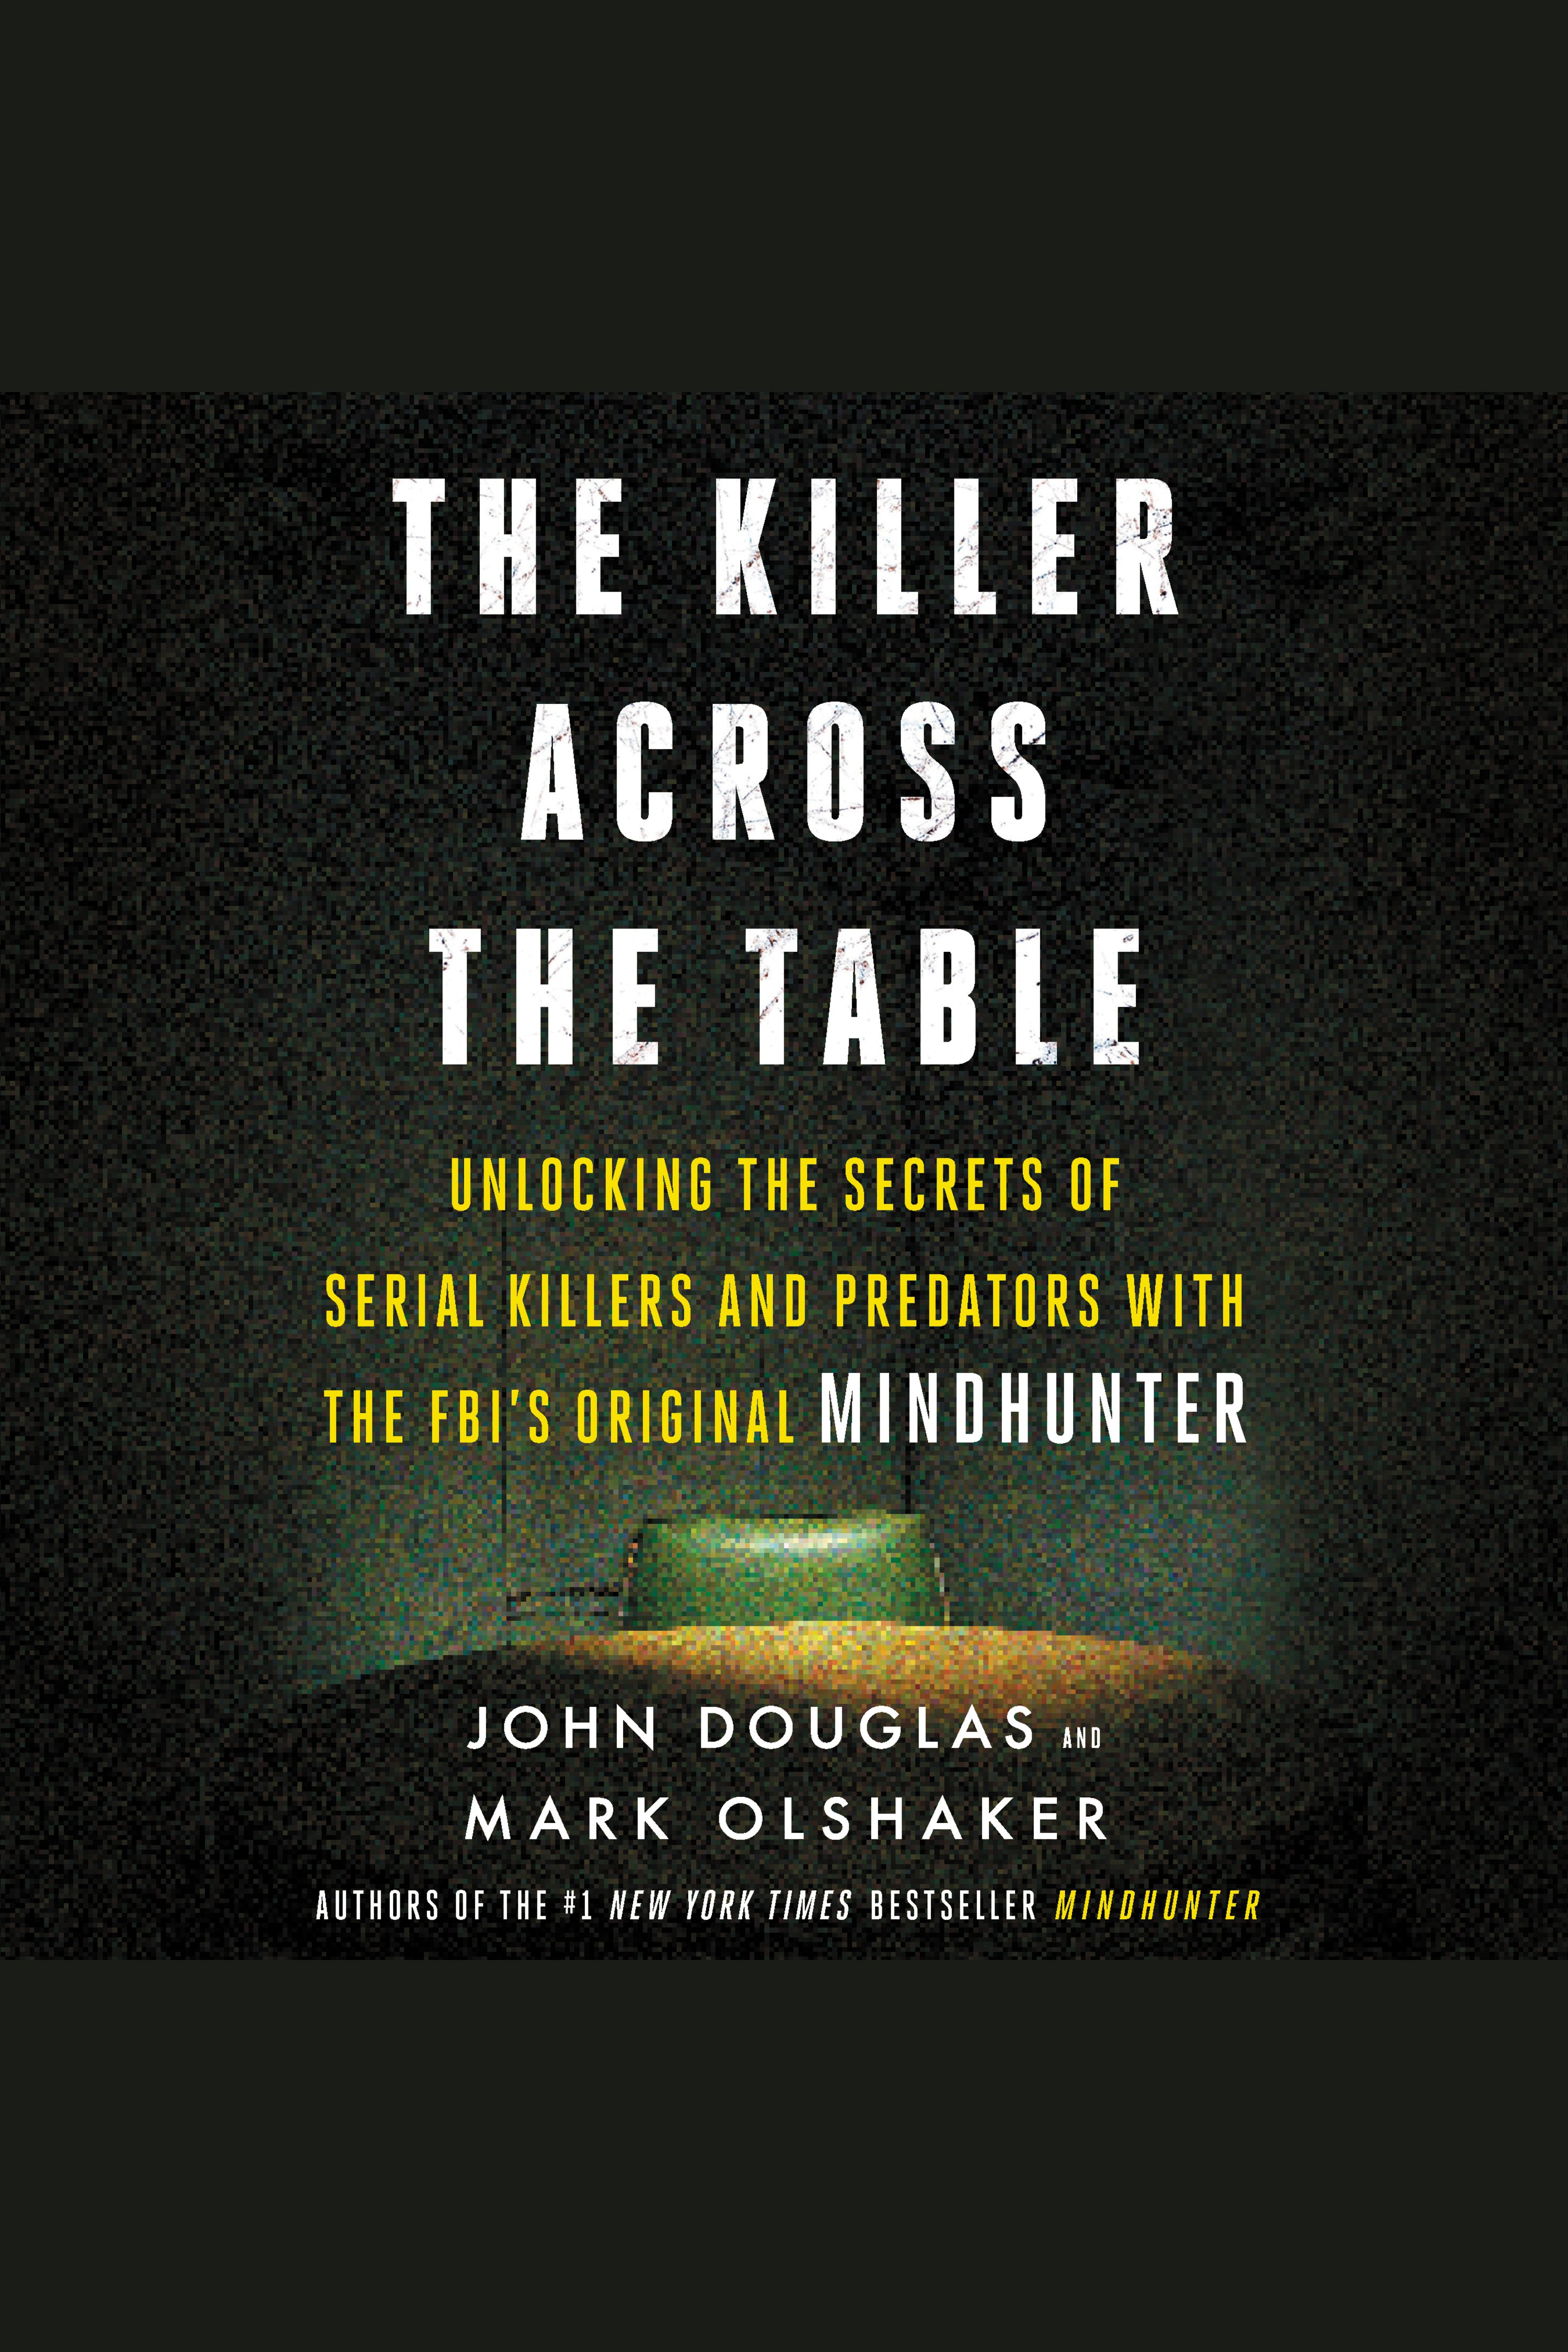 Killer Across the Table, The Unlocking the Secrets of Serial Killers and Predators with the FBI's Original Mindhunter